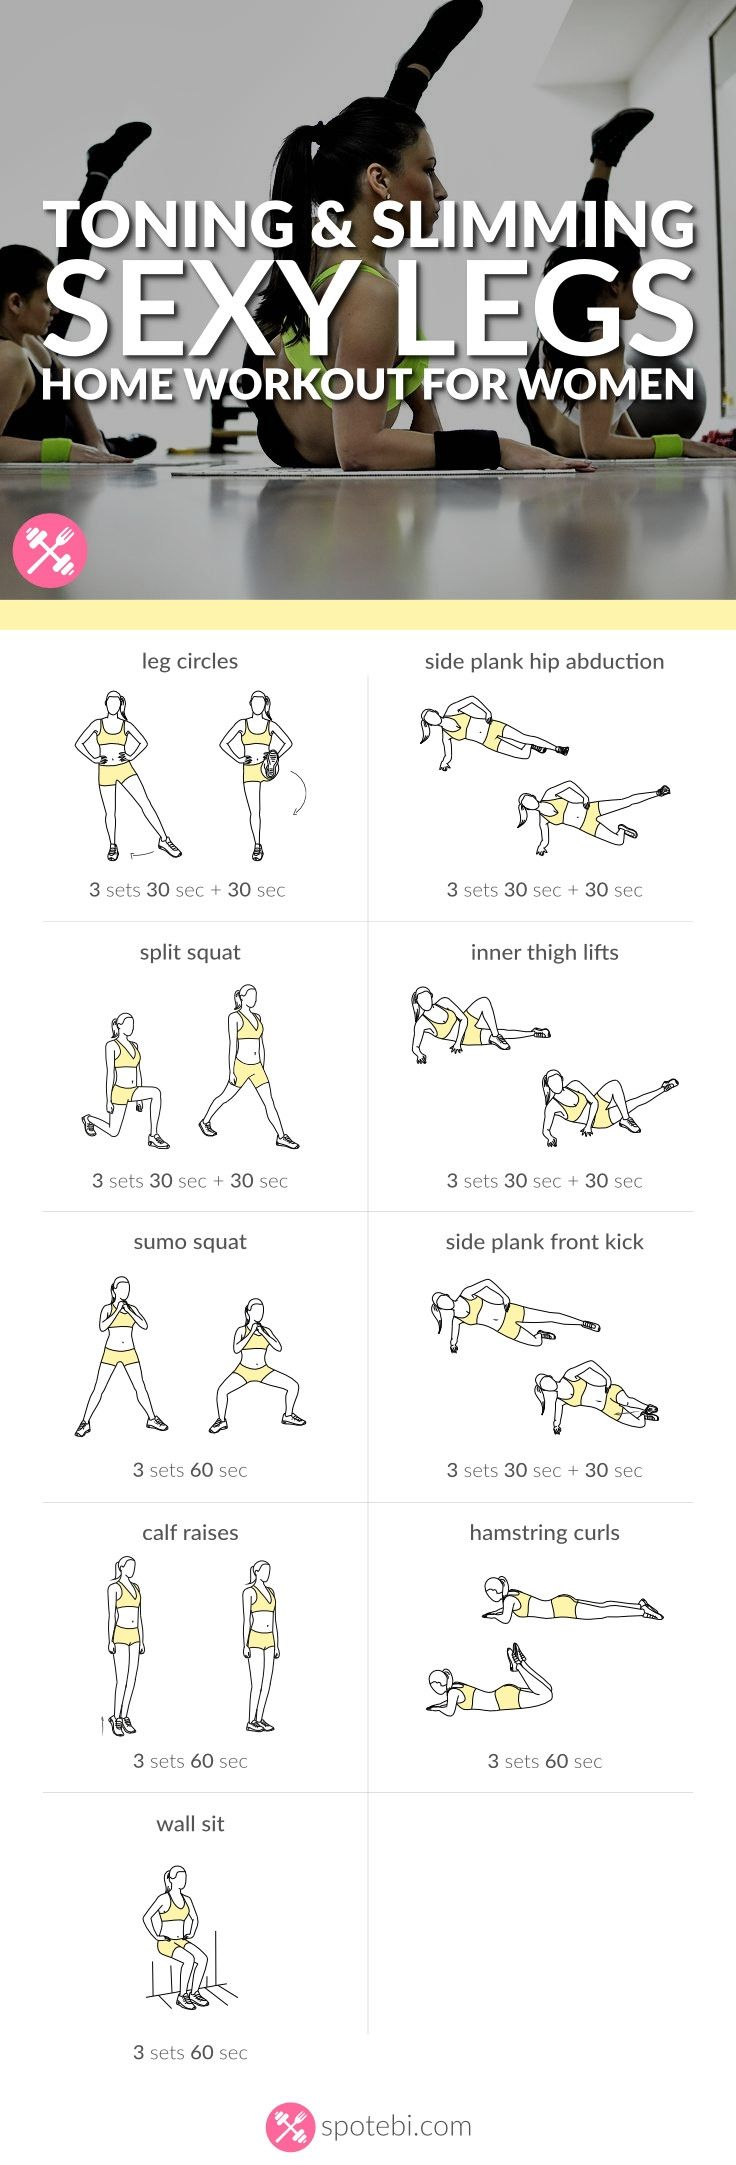 Get lean and strong with this sexy legs workout. 9 toning and slimming leg exercises to work your inner and outer thighs, hips, quads, hamstrings and calves. http://www.spotebi.com/workout-routines/sexy-legs-workout-women-toning-slimming/ #weightlossrecipes